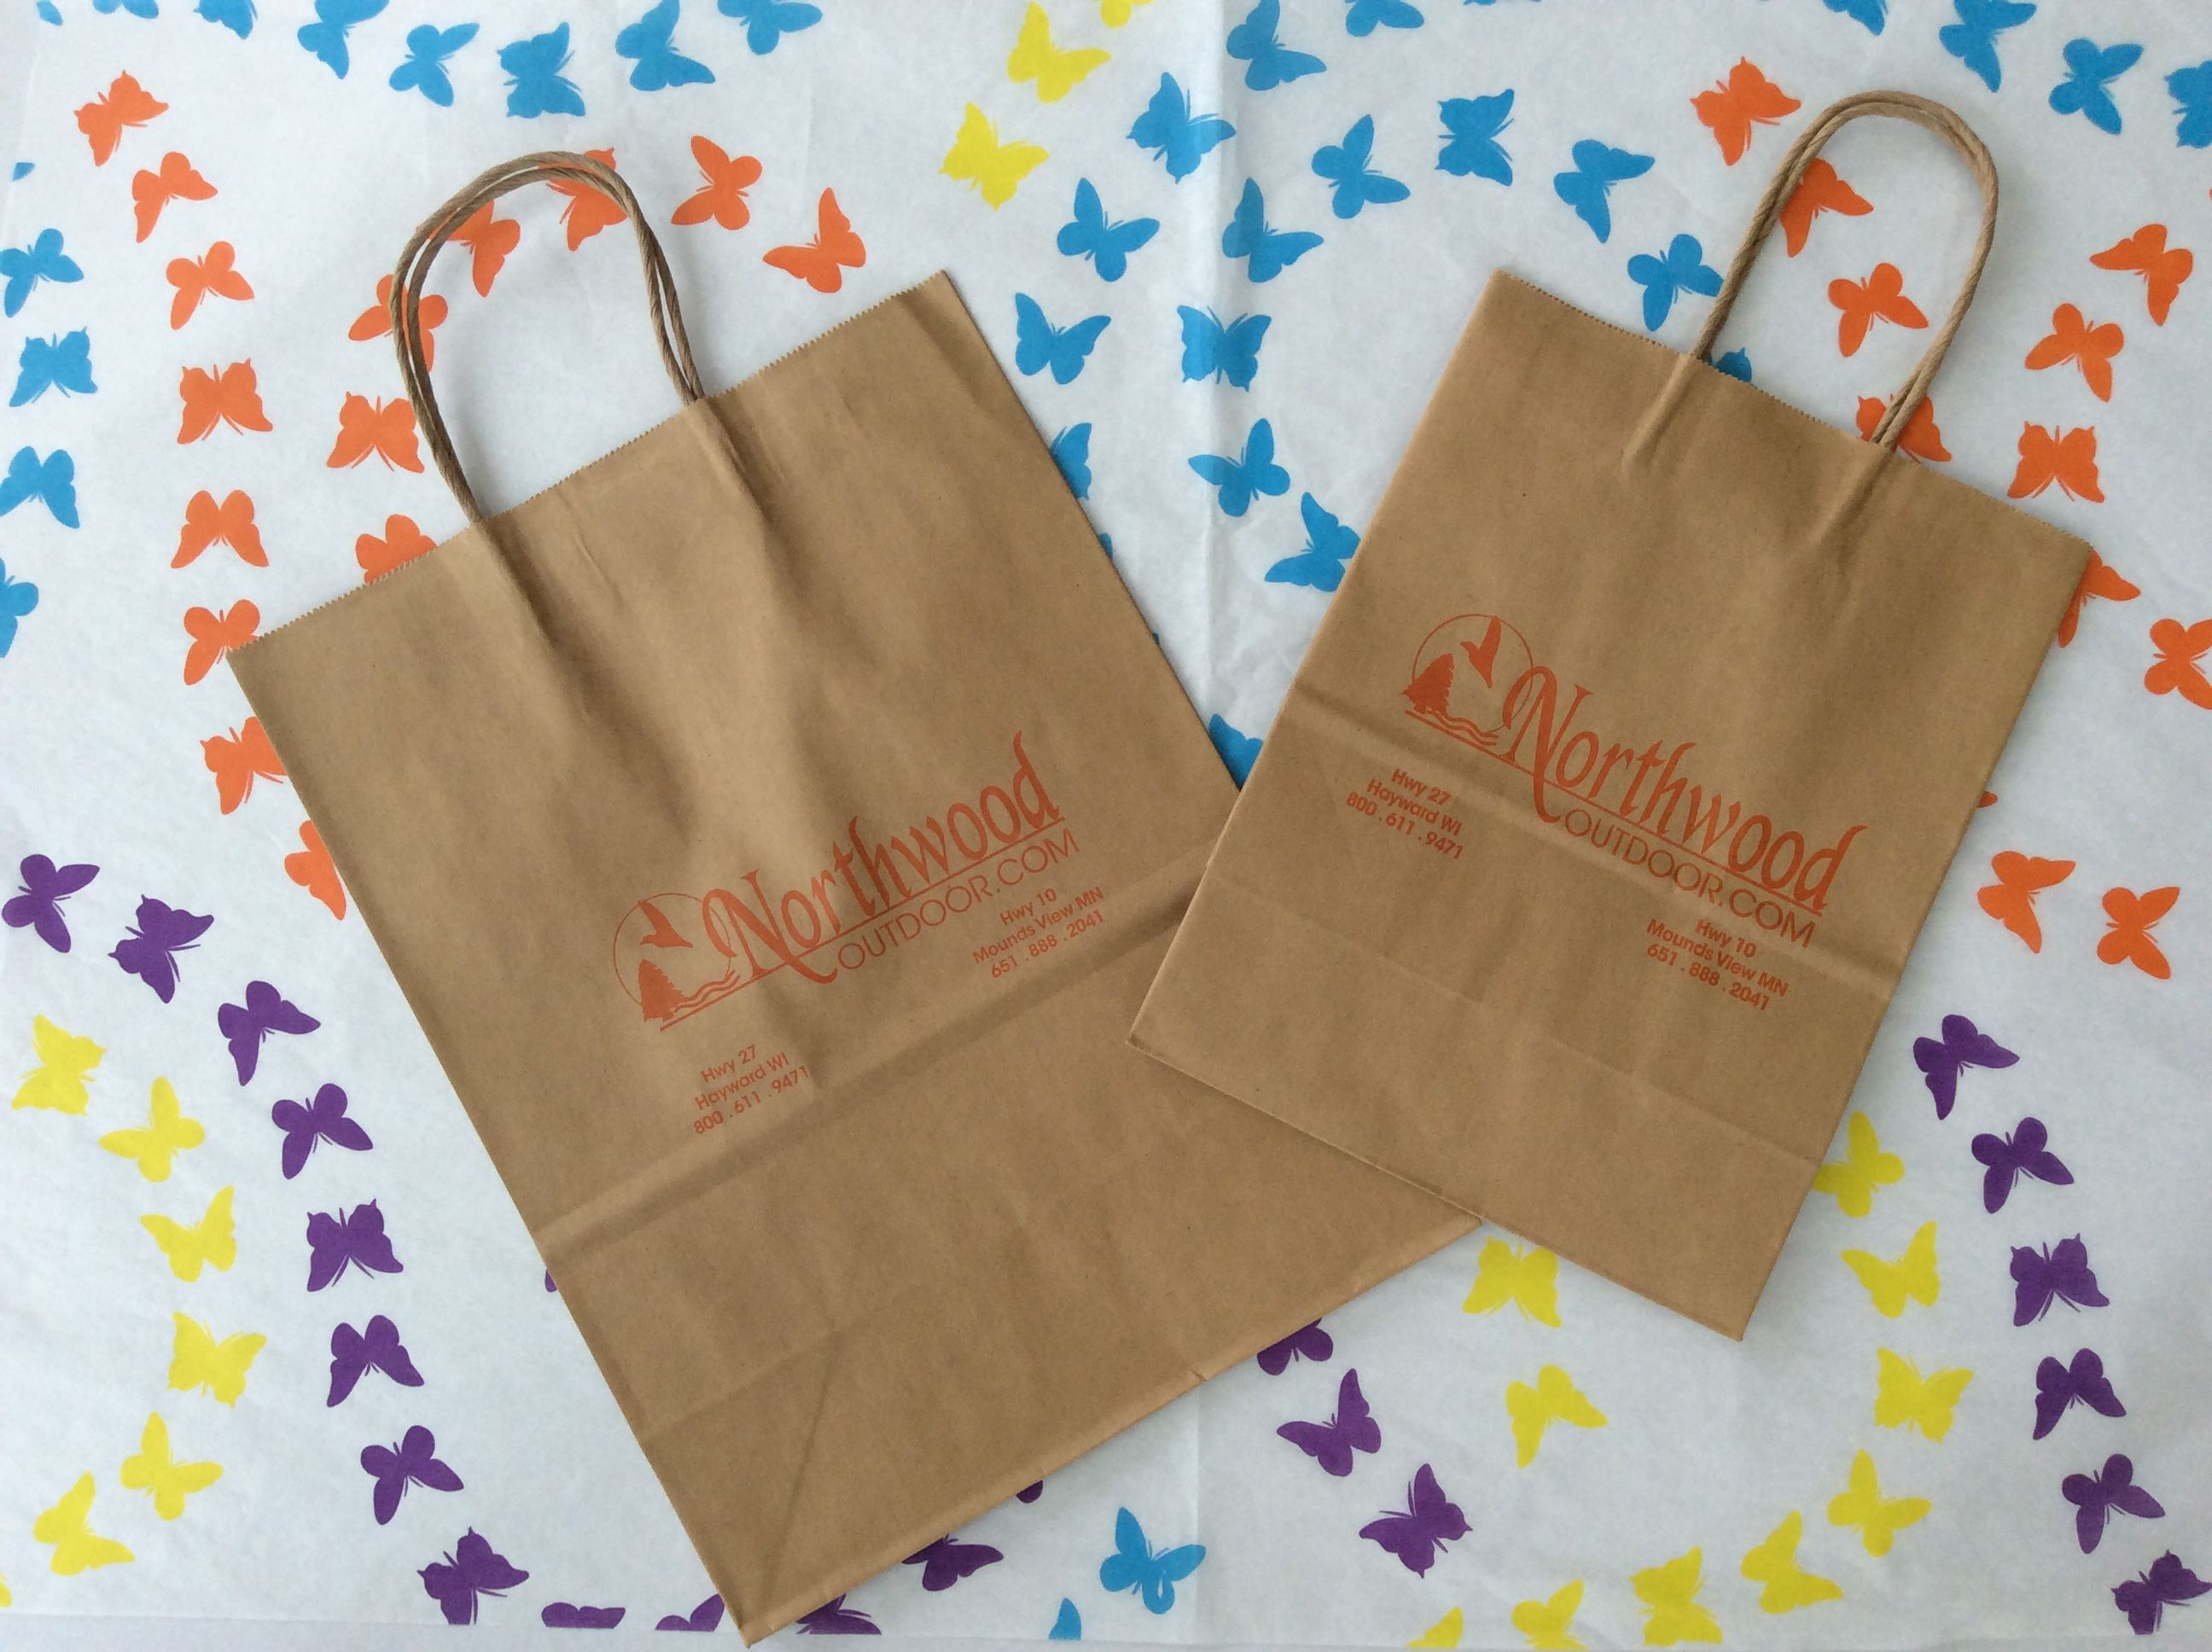 One Color Hot Stamp Logo Printed On 2 Sizes Of Natural Kraft Paper Twist Handle Bags Using The Same Printing Pla Hot Stamp Printing Paper Twist Butterfly Chain